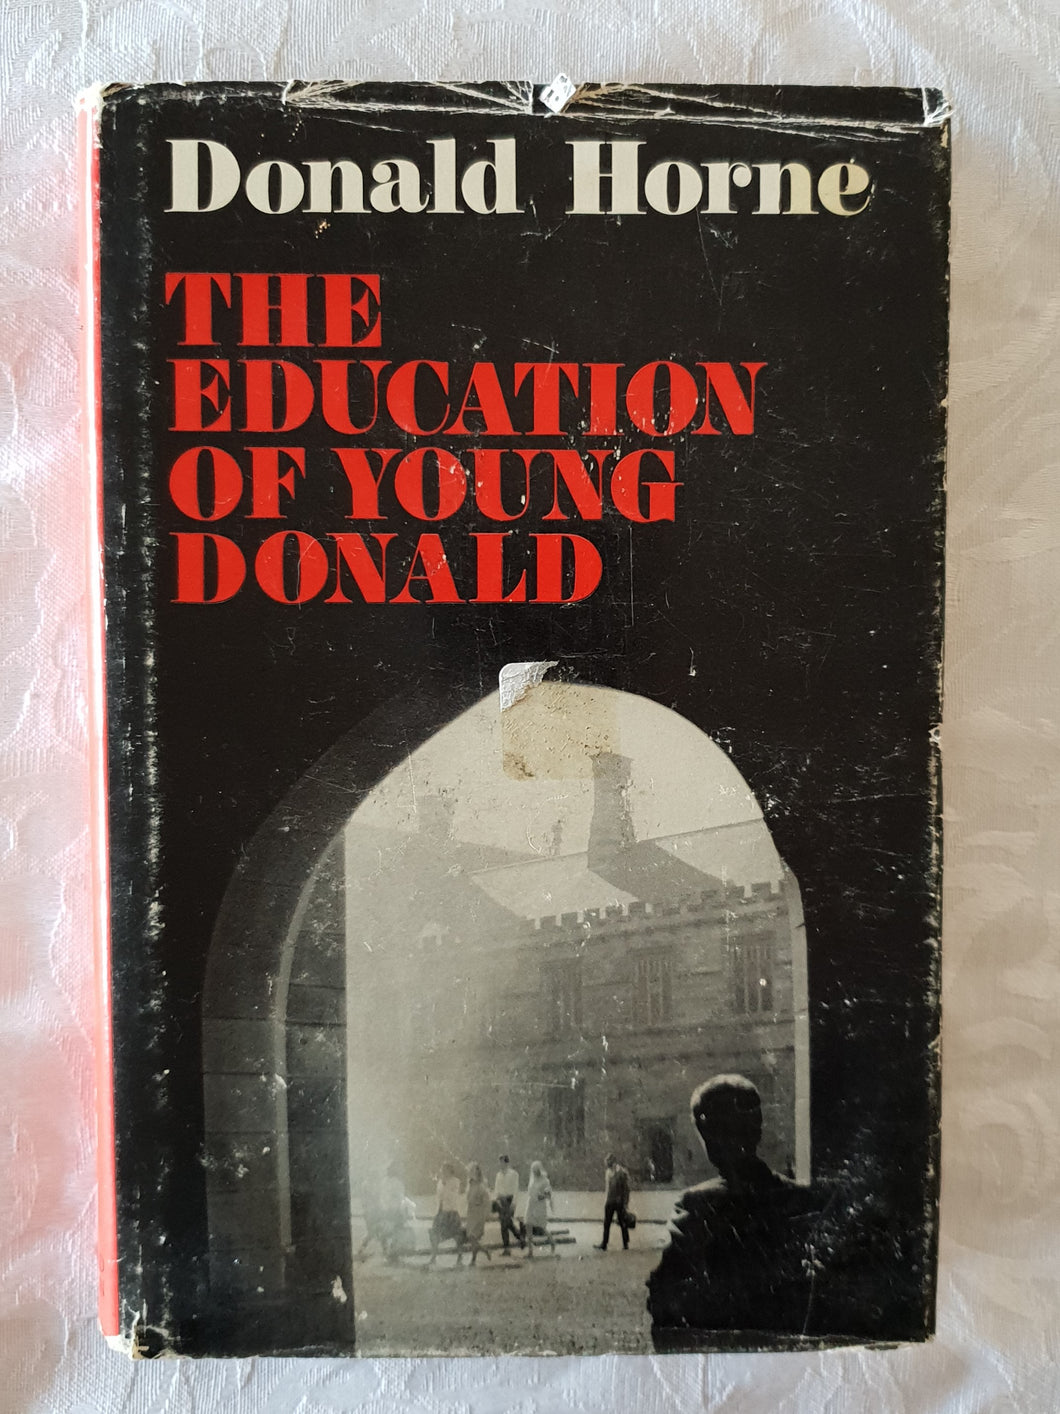 The Education of Young Donald by Donald Horne